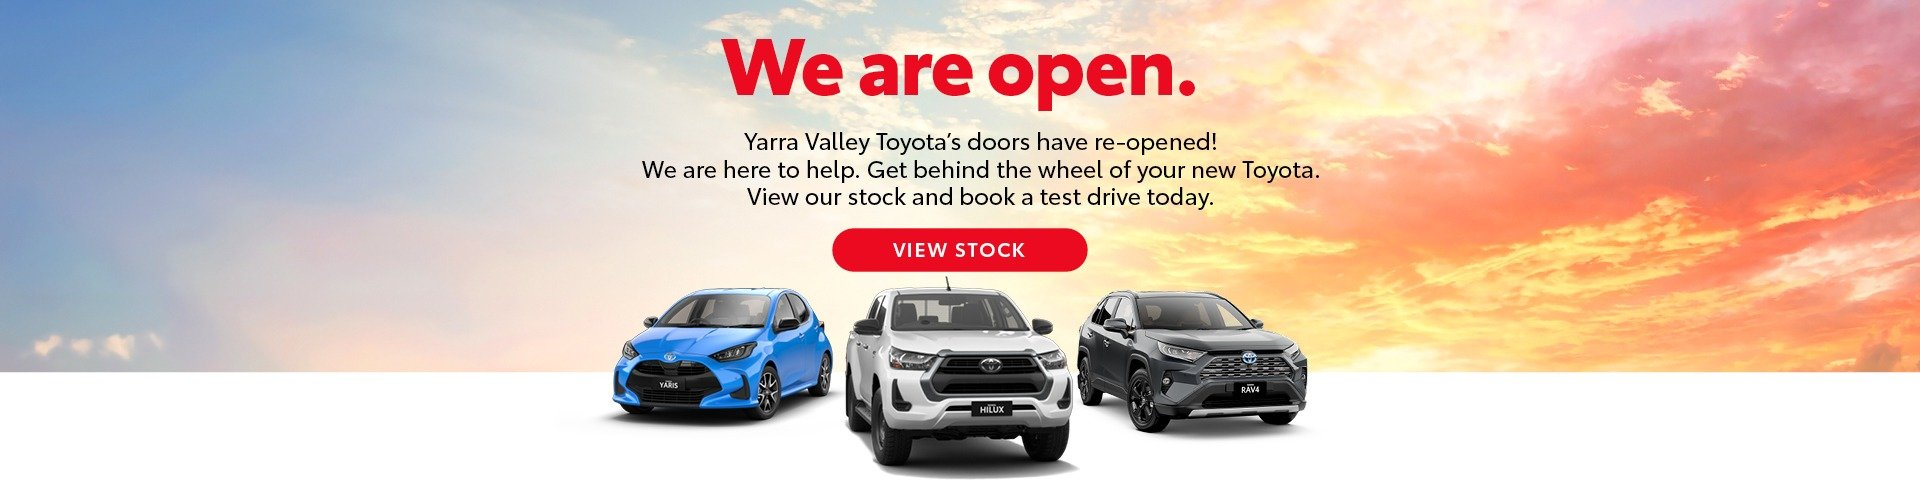 Yarra Valley Toyota - We Are Open